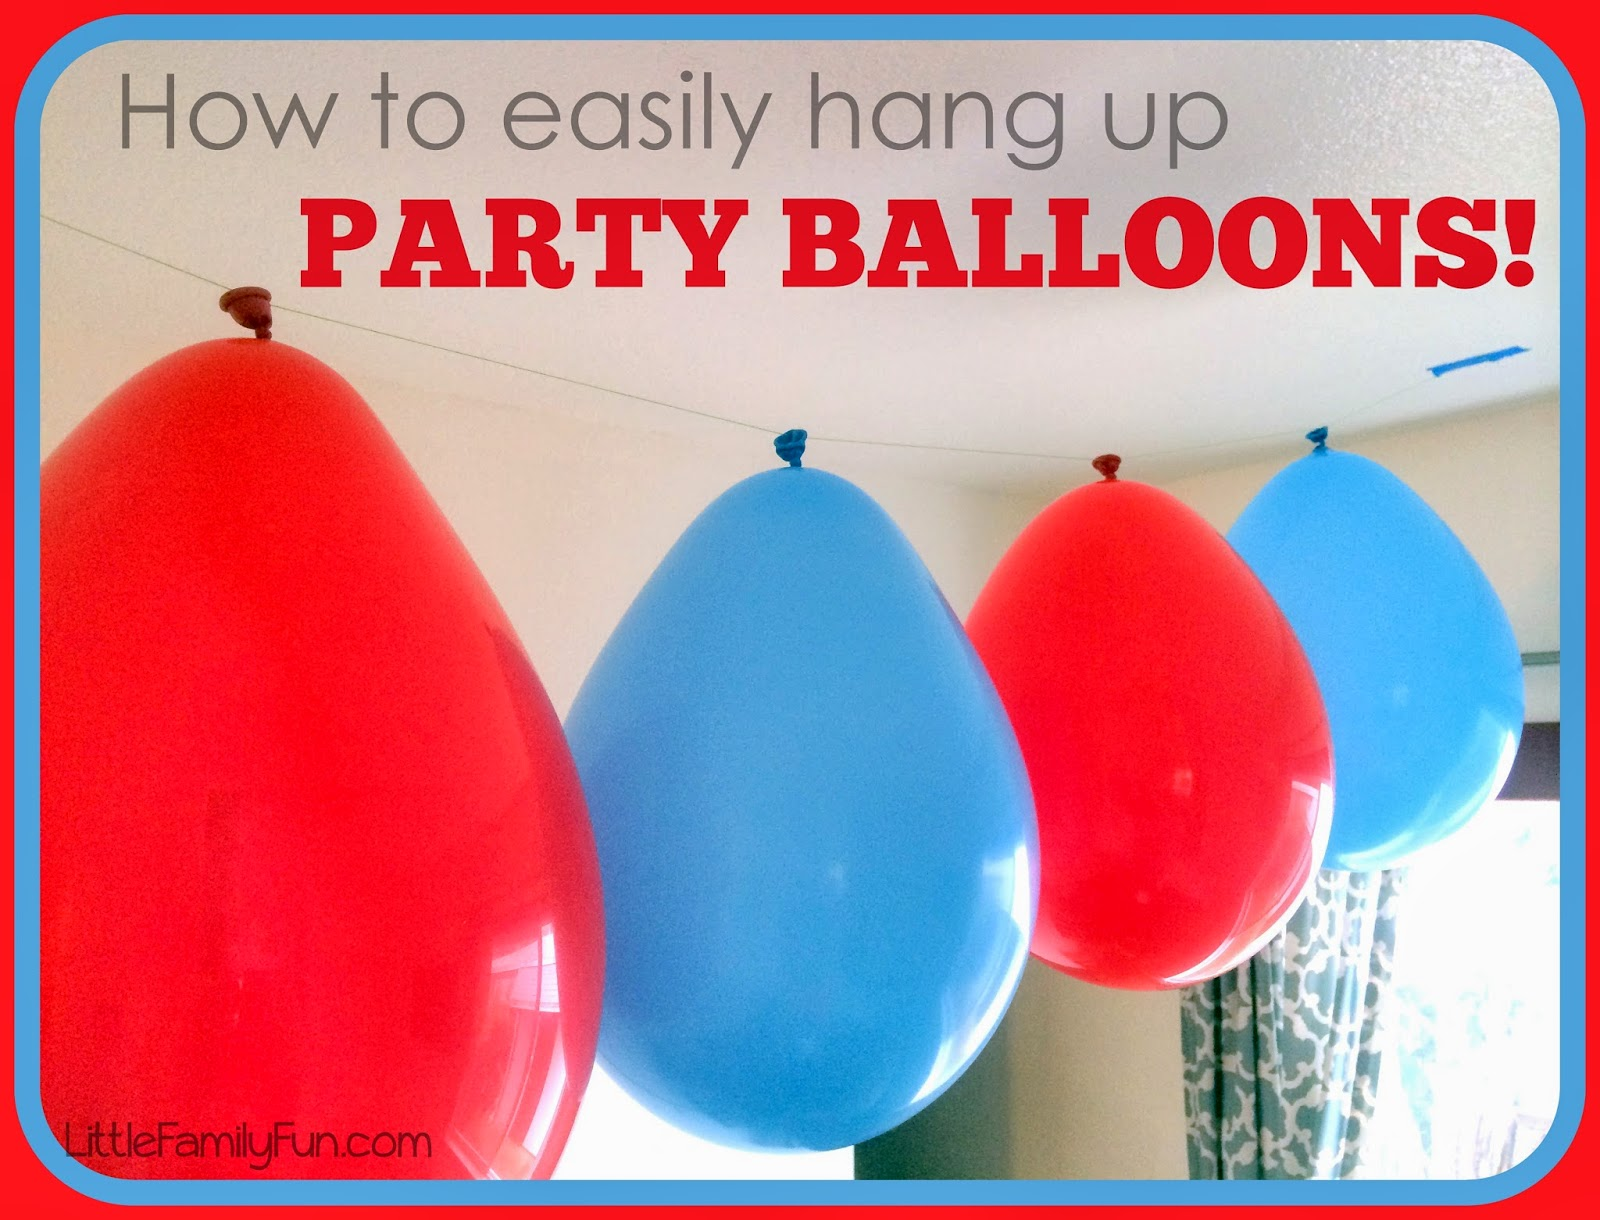 http://www.littlefamilyfun.com/2014/04/easily-hang-up-party-balloons.html